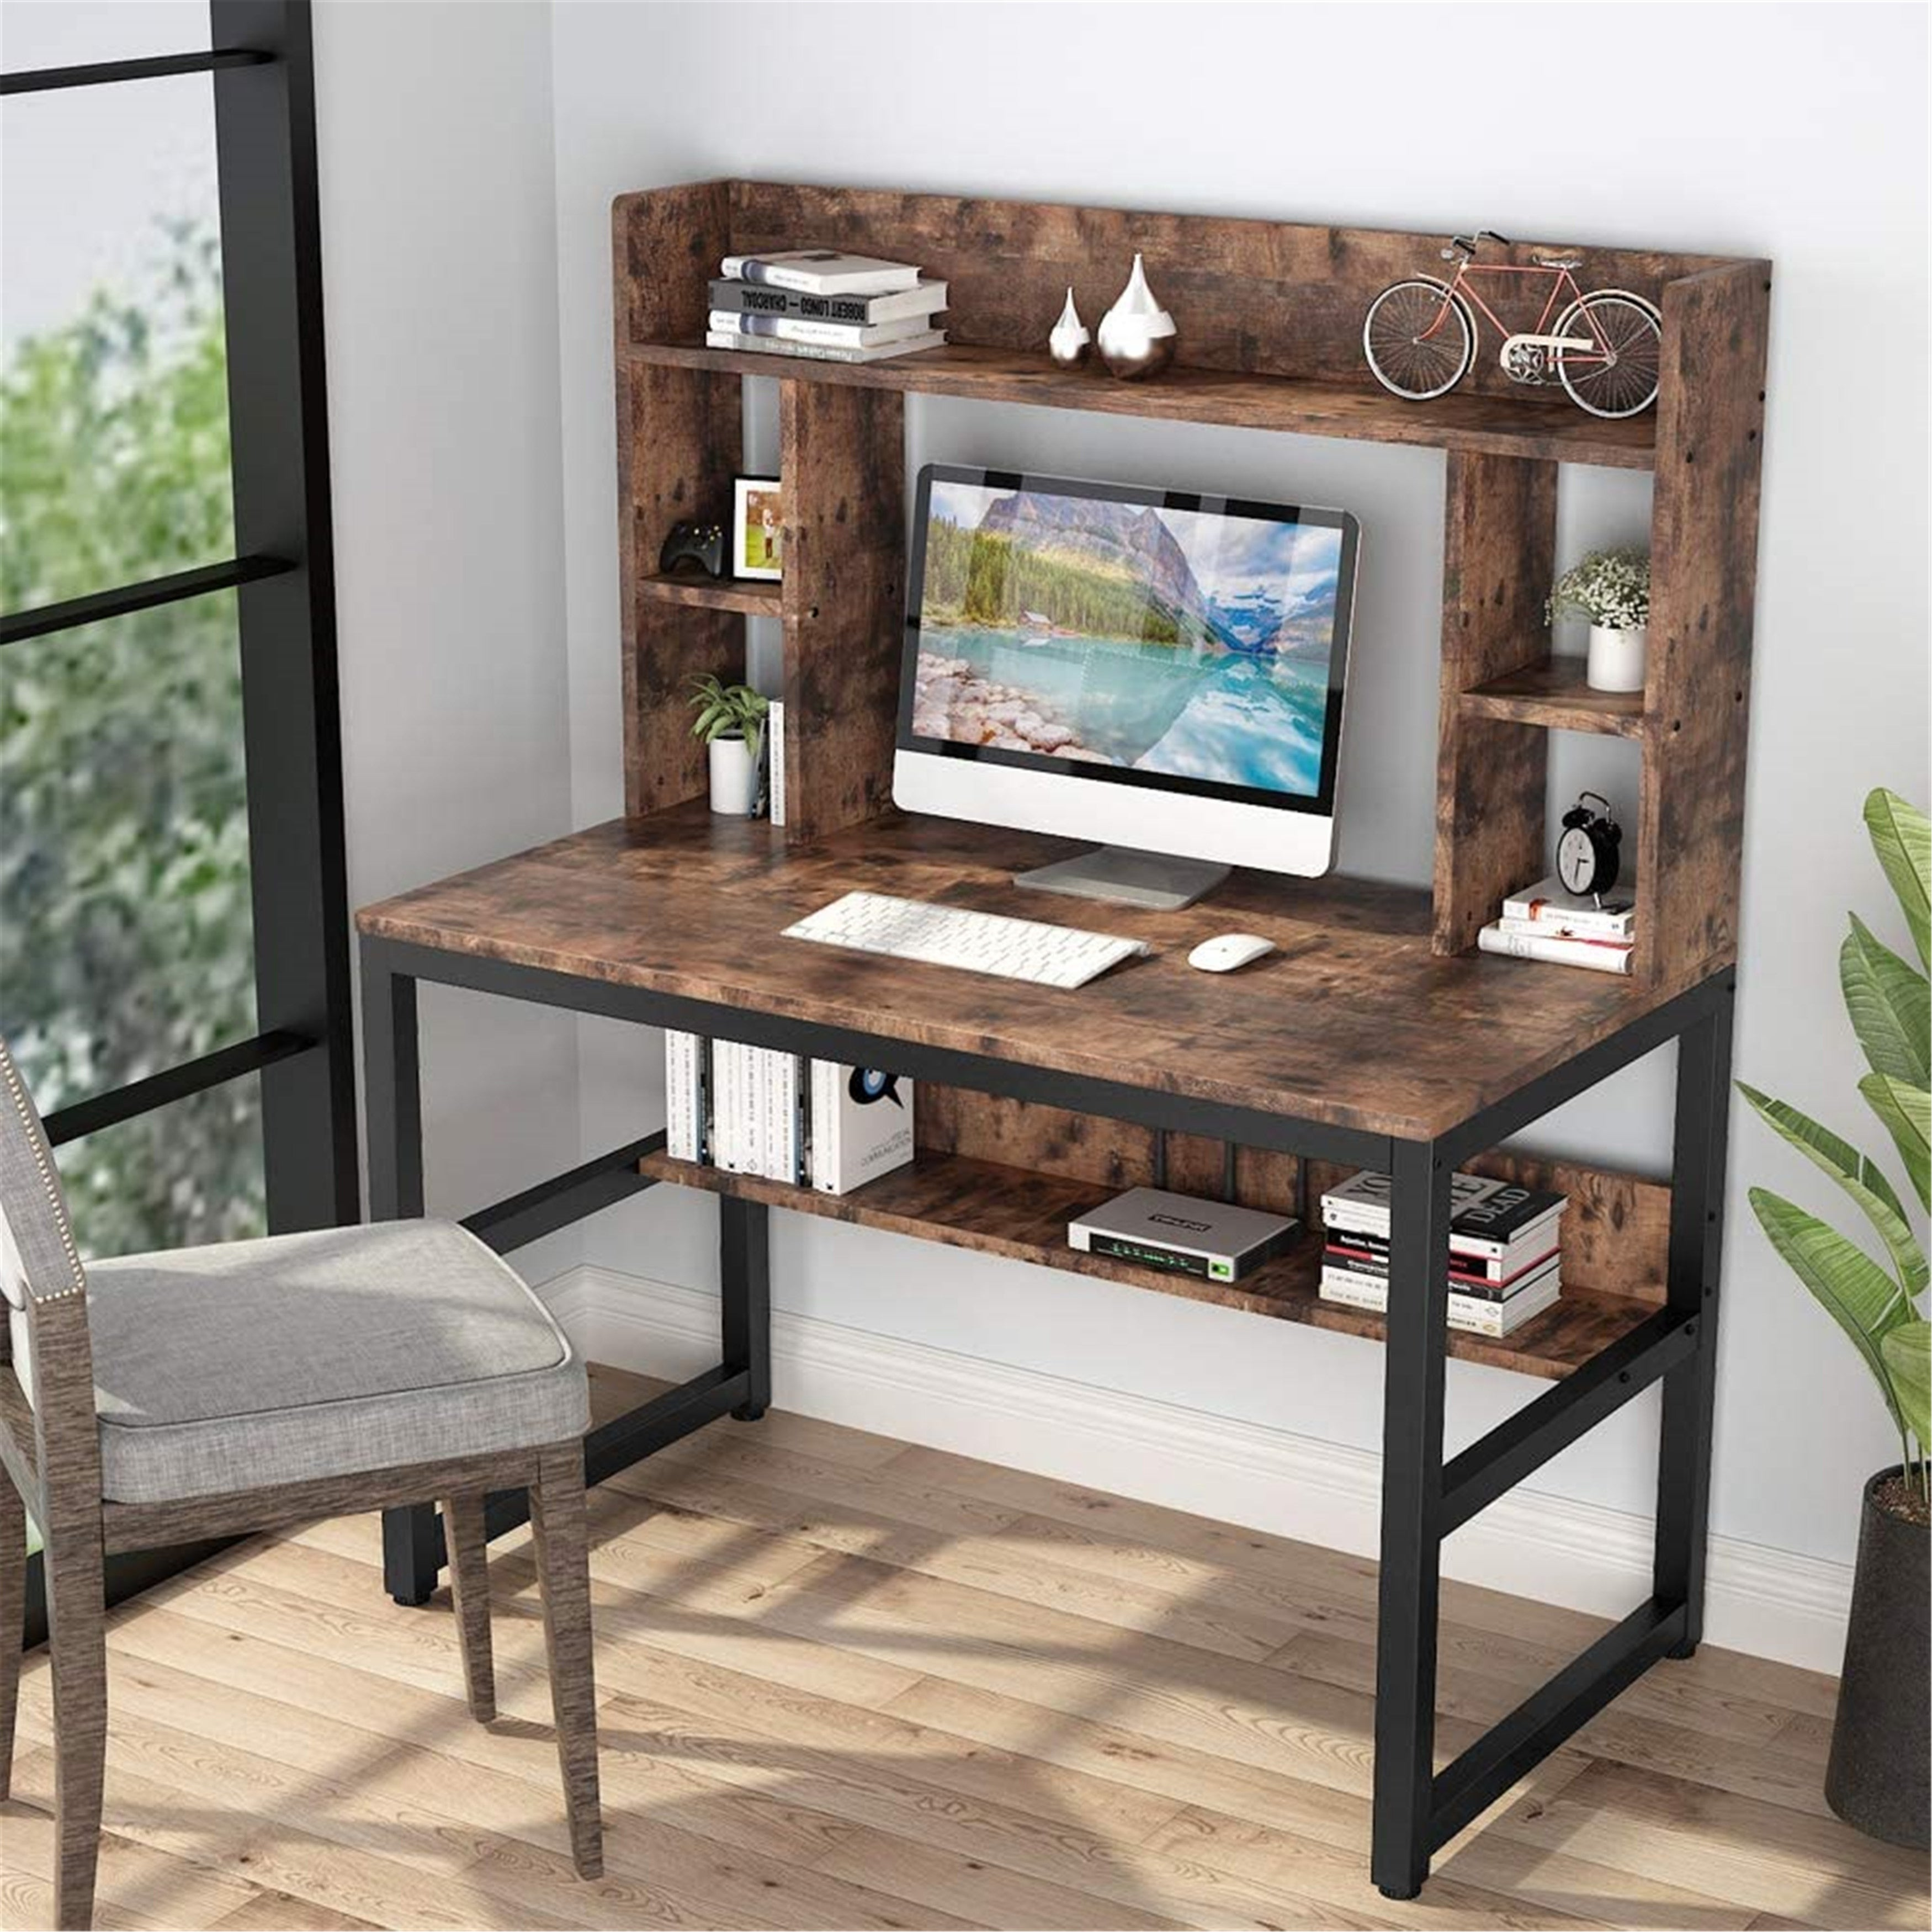 47 Inches Computer Desk With Hutch Writing Desk With Shelves On Sale Overstock 30394876 Wood Finish Metal Finish Rustic Brown